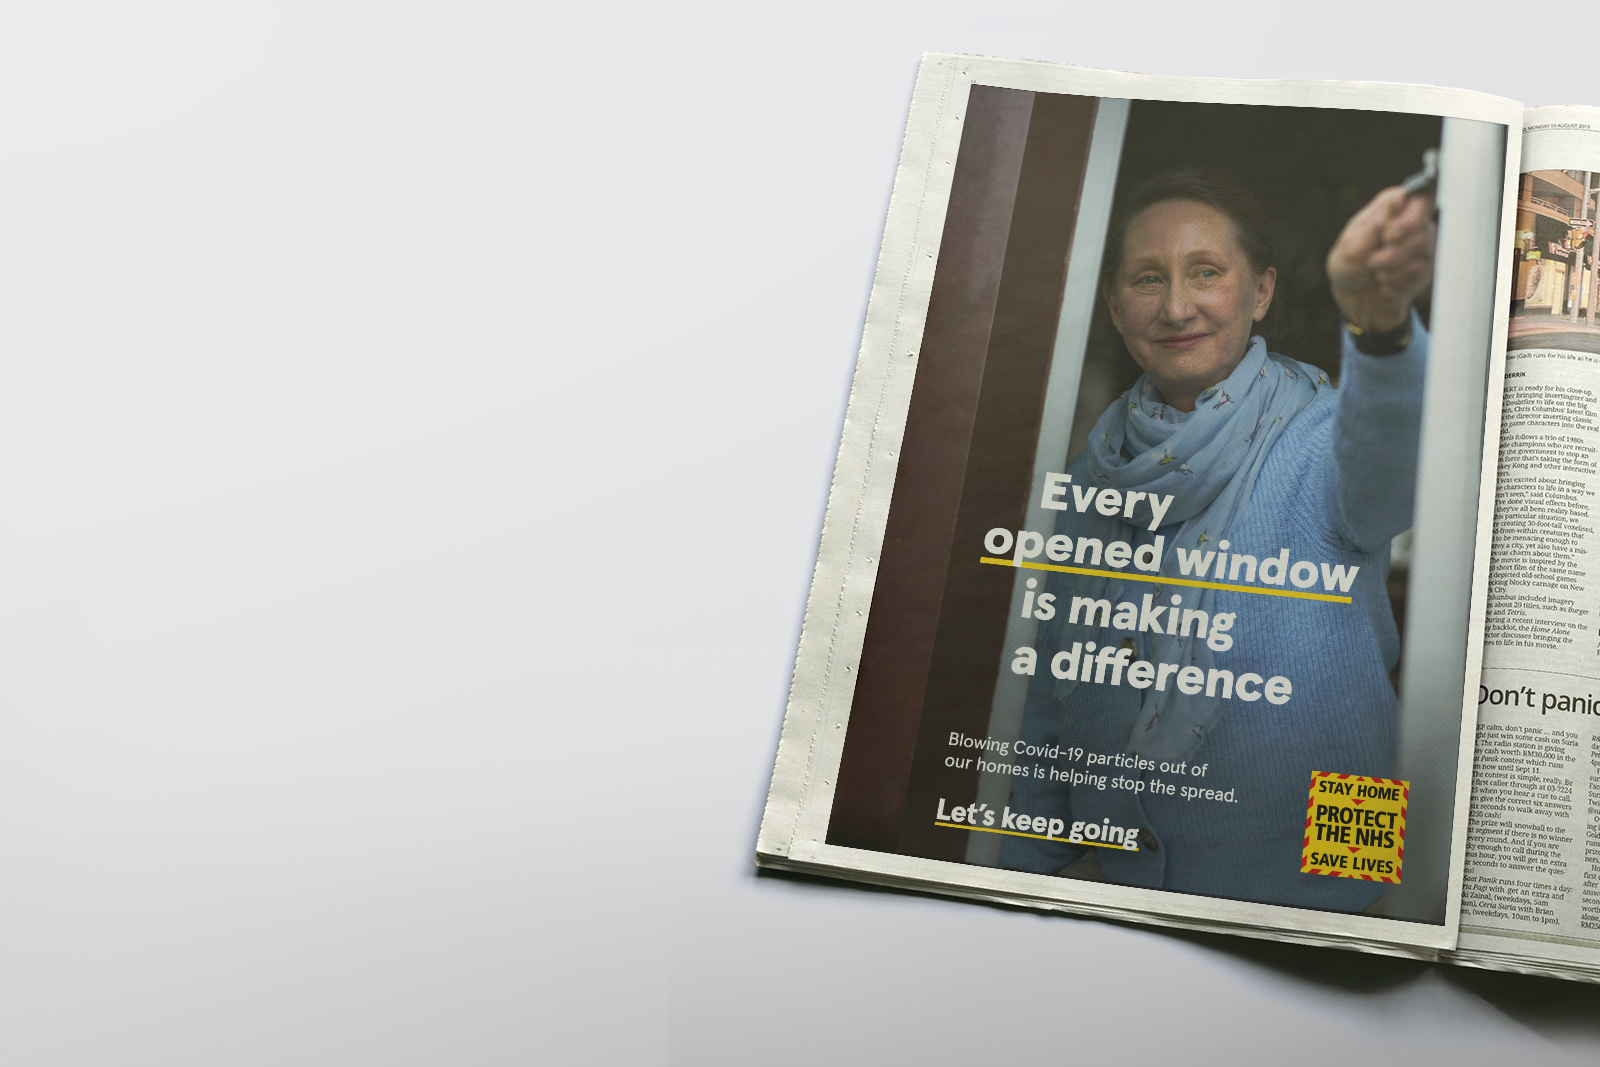 Magazine Image of women opening window as part of the Let's Keep Going NHS and UK government Covid-19 Campaign